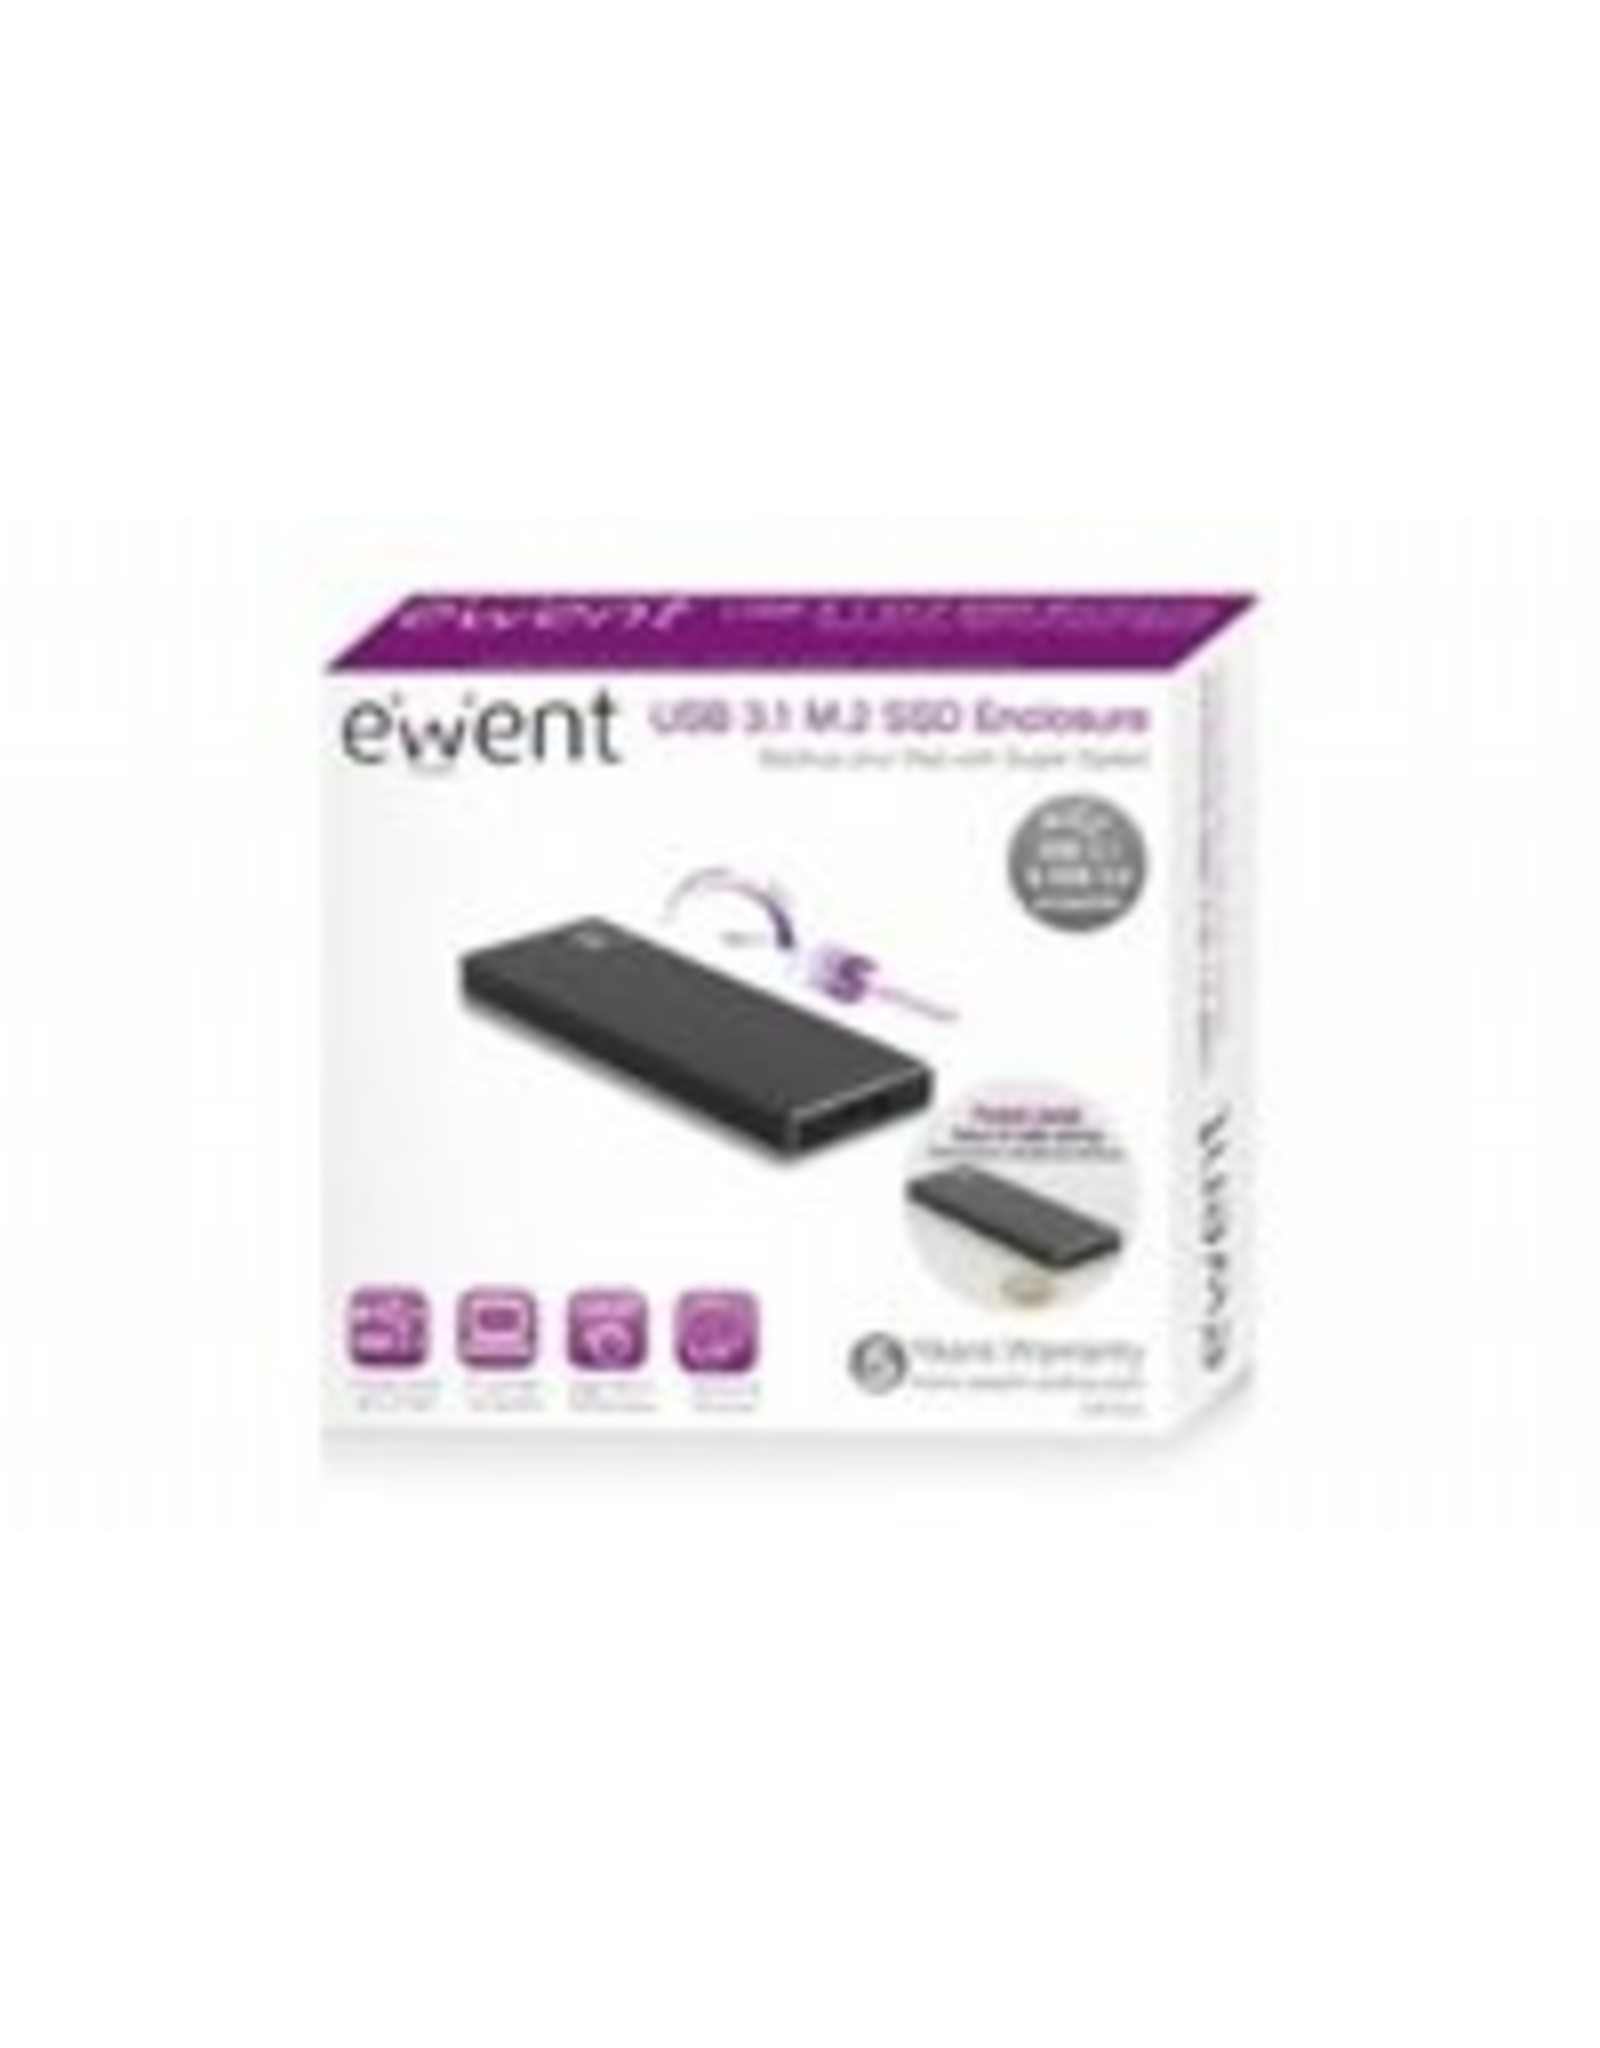 Ewent USB 3.0 Hard Disk Enclosure M.2 SSD